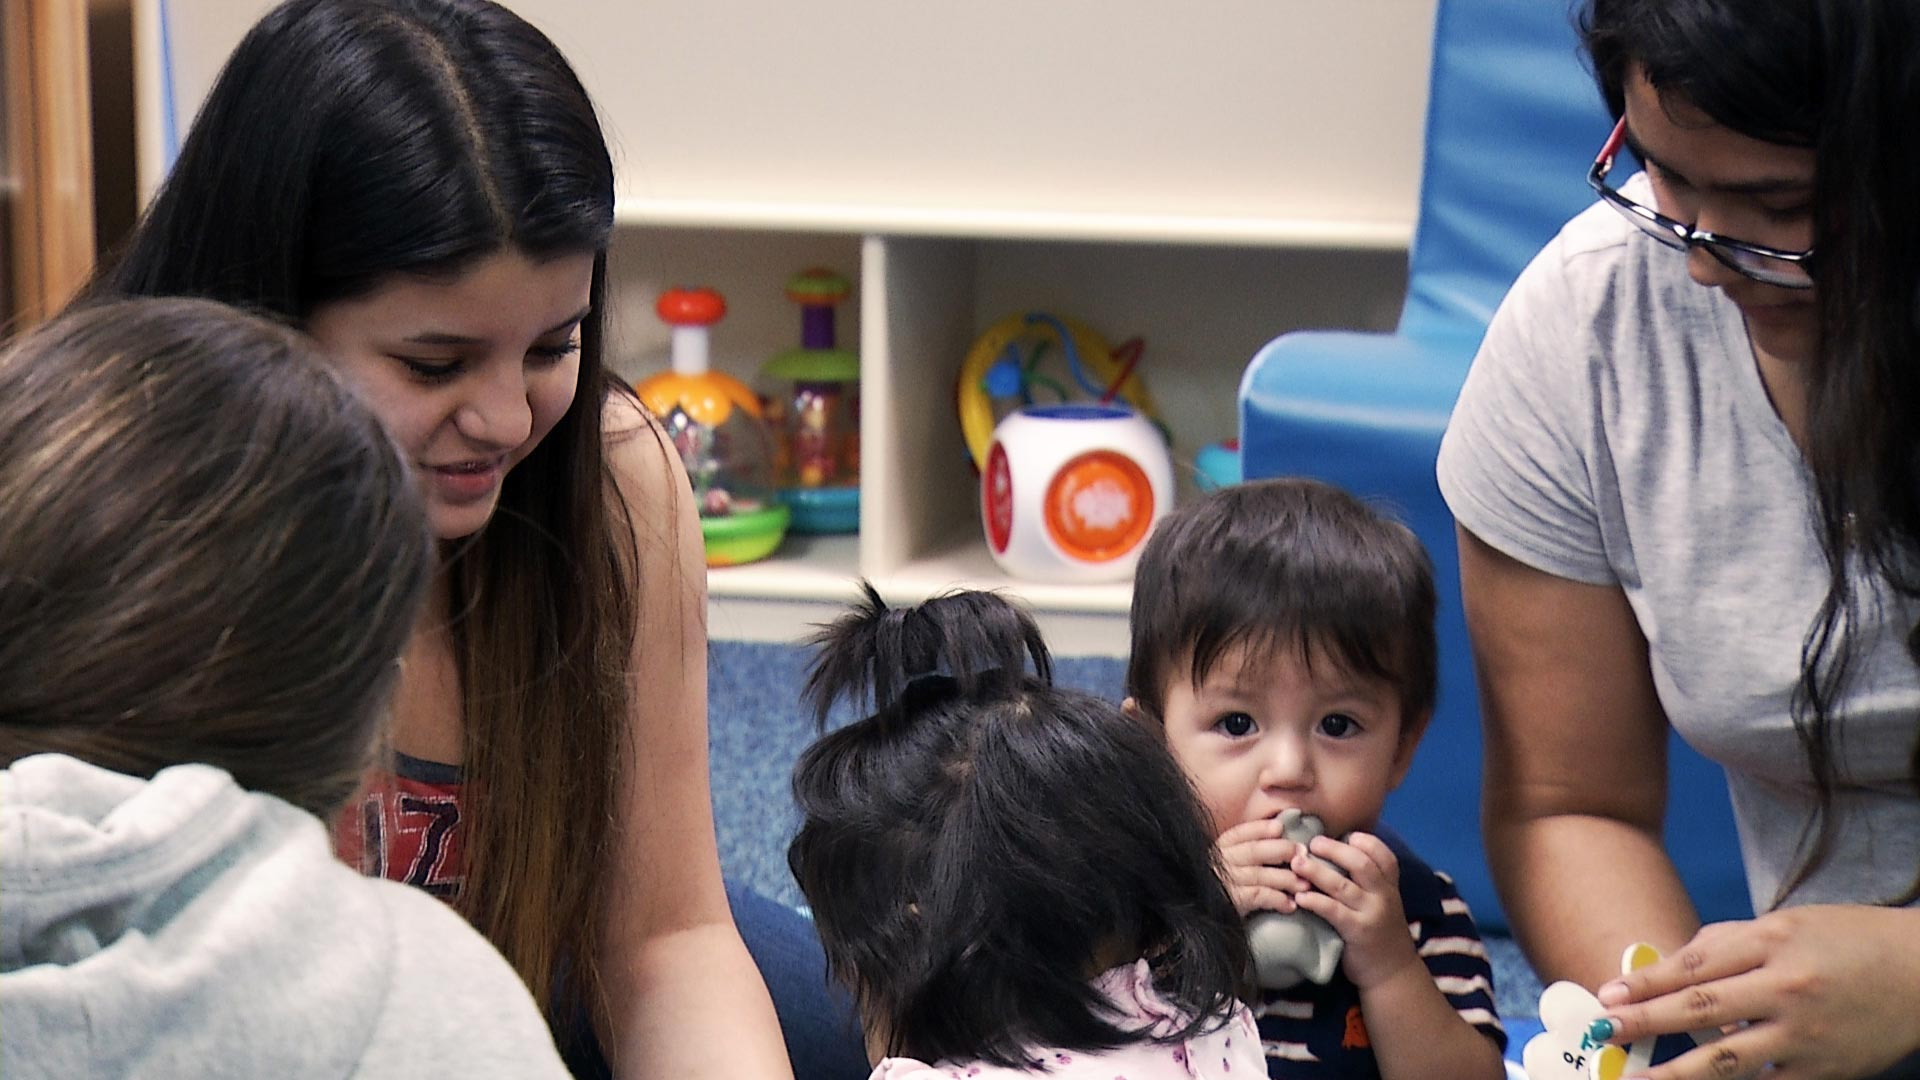 Yosmara Reyes (left), 17, and Corina Perez, 18, interact with their children in the Infant Center operated by Sunnyside High School's Teenage Parent Program on March 5, 2019.